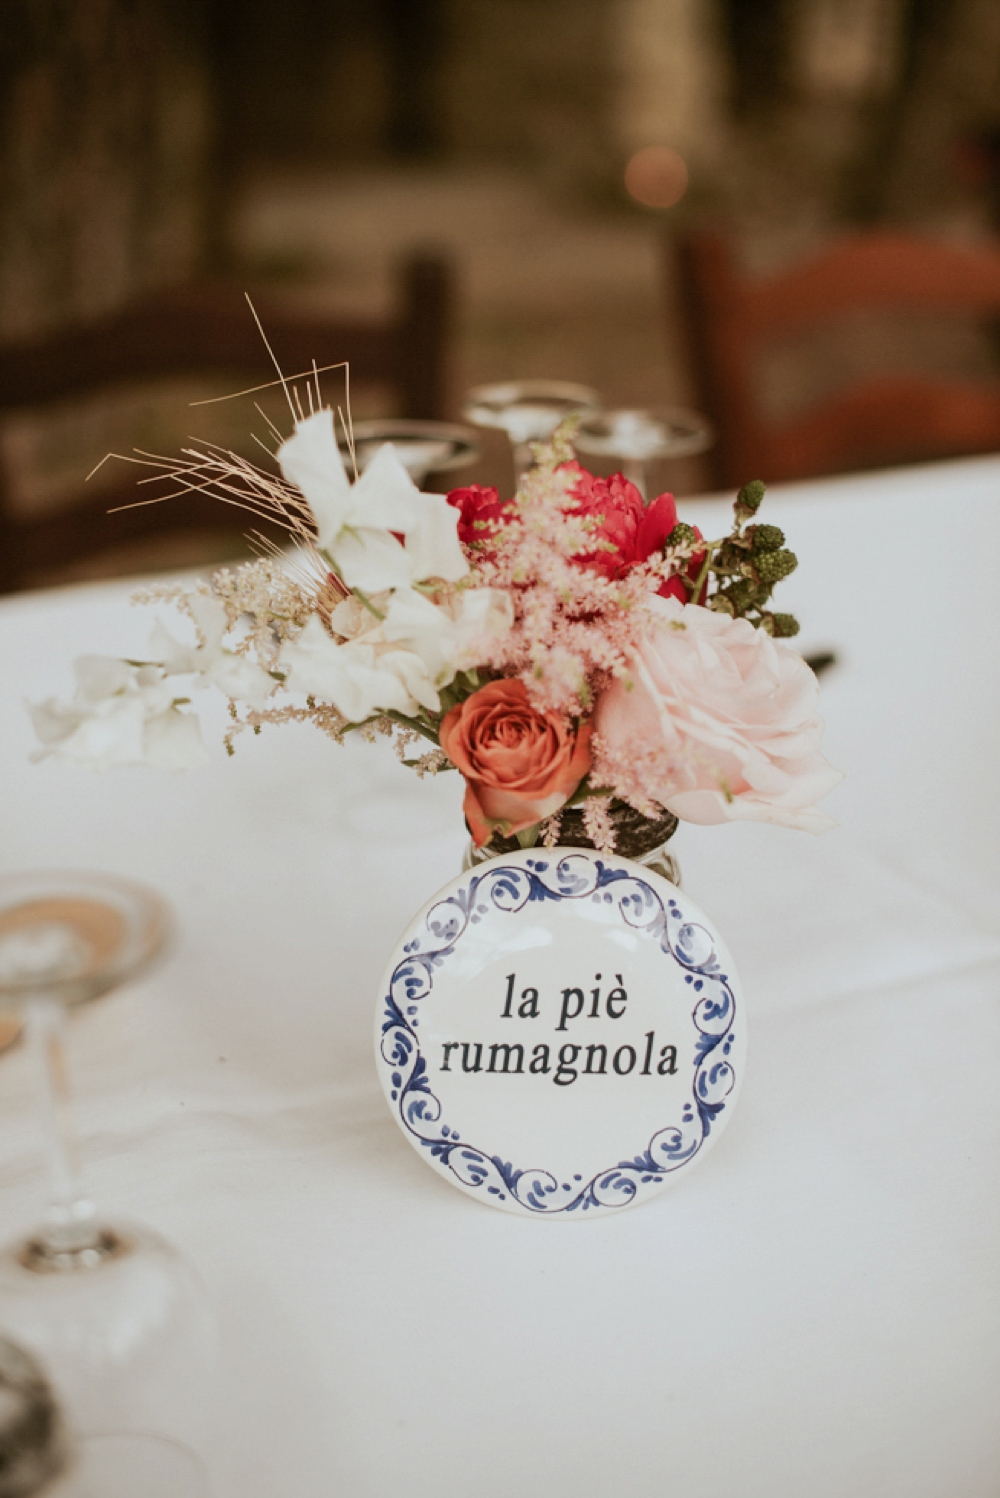 Rustic Foodie Italy Wedding -table setting- Laura Bravi Events